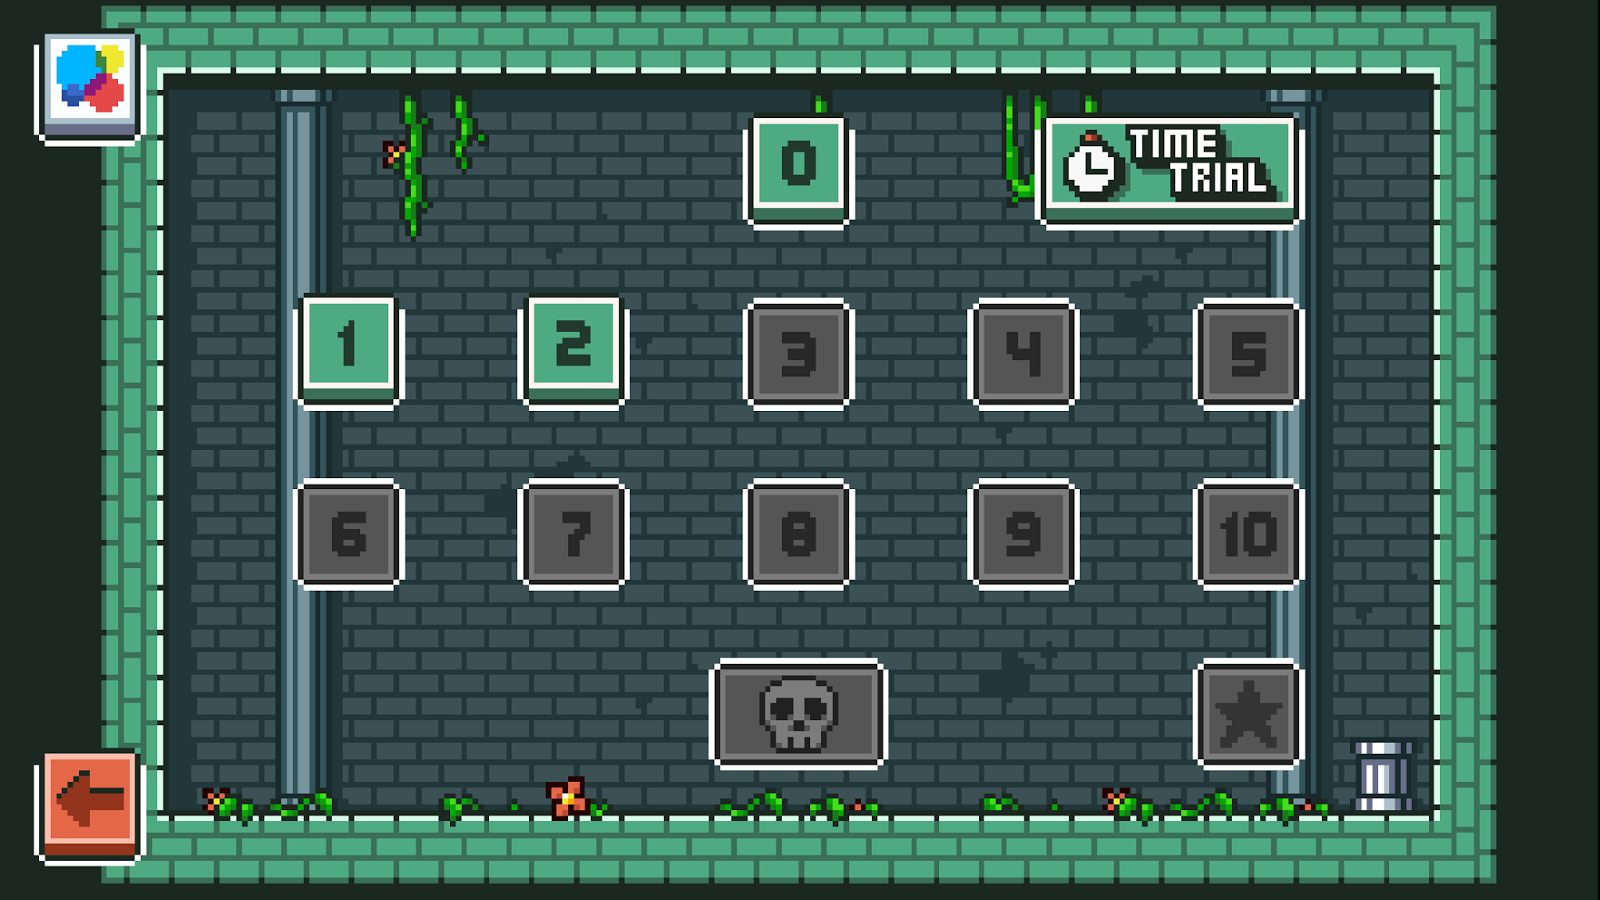 FREE ANDROID GAME] Super Dangerous Dungeons - Escape The